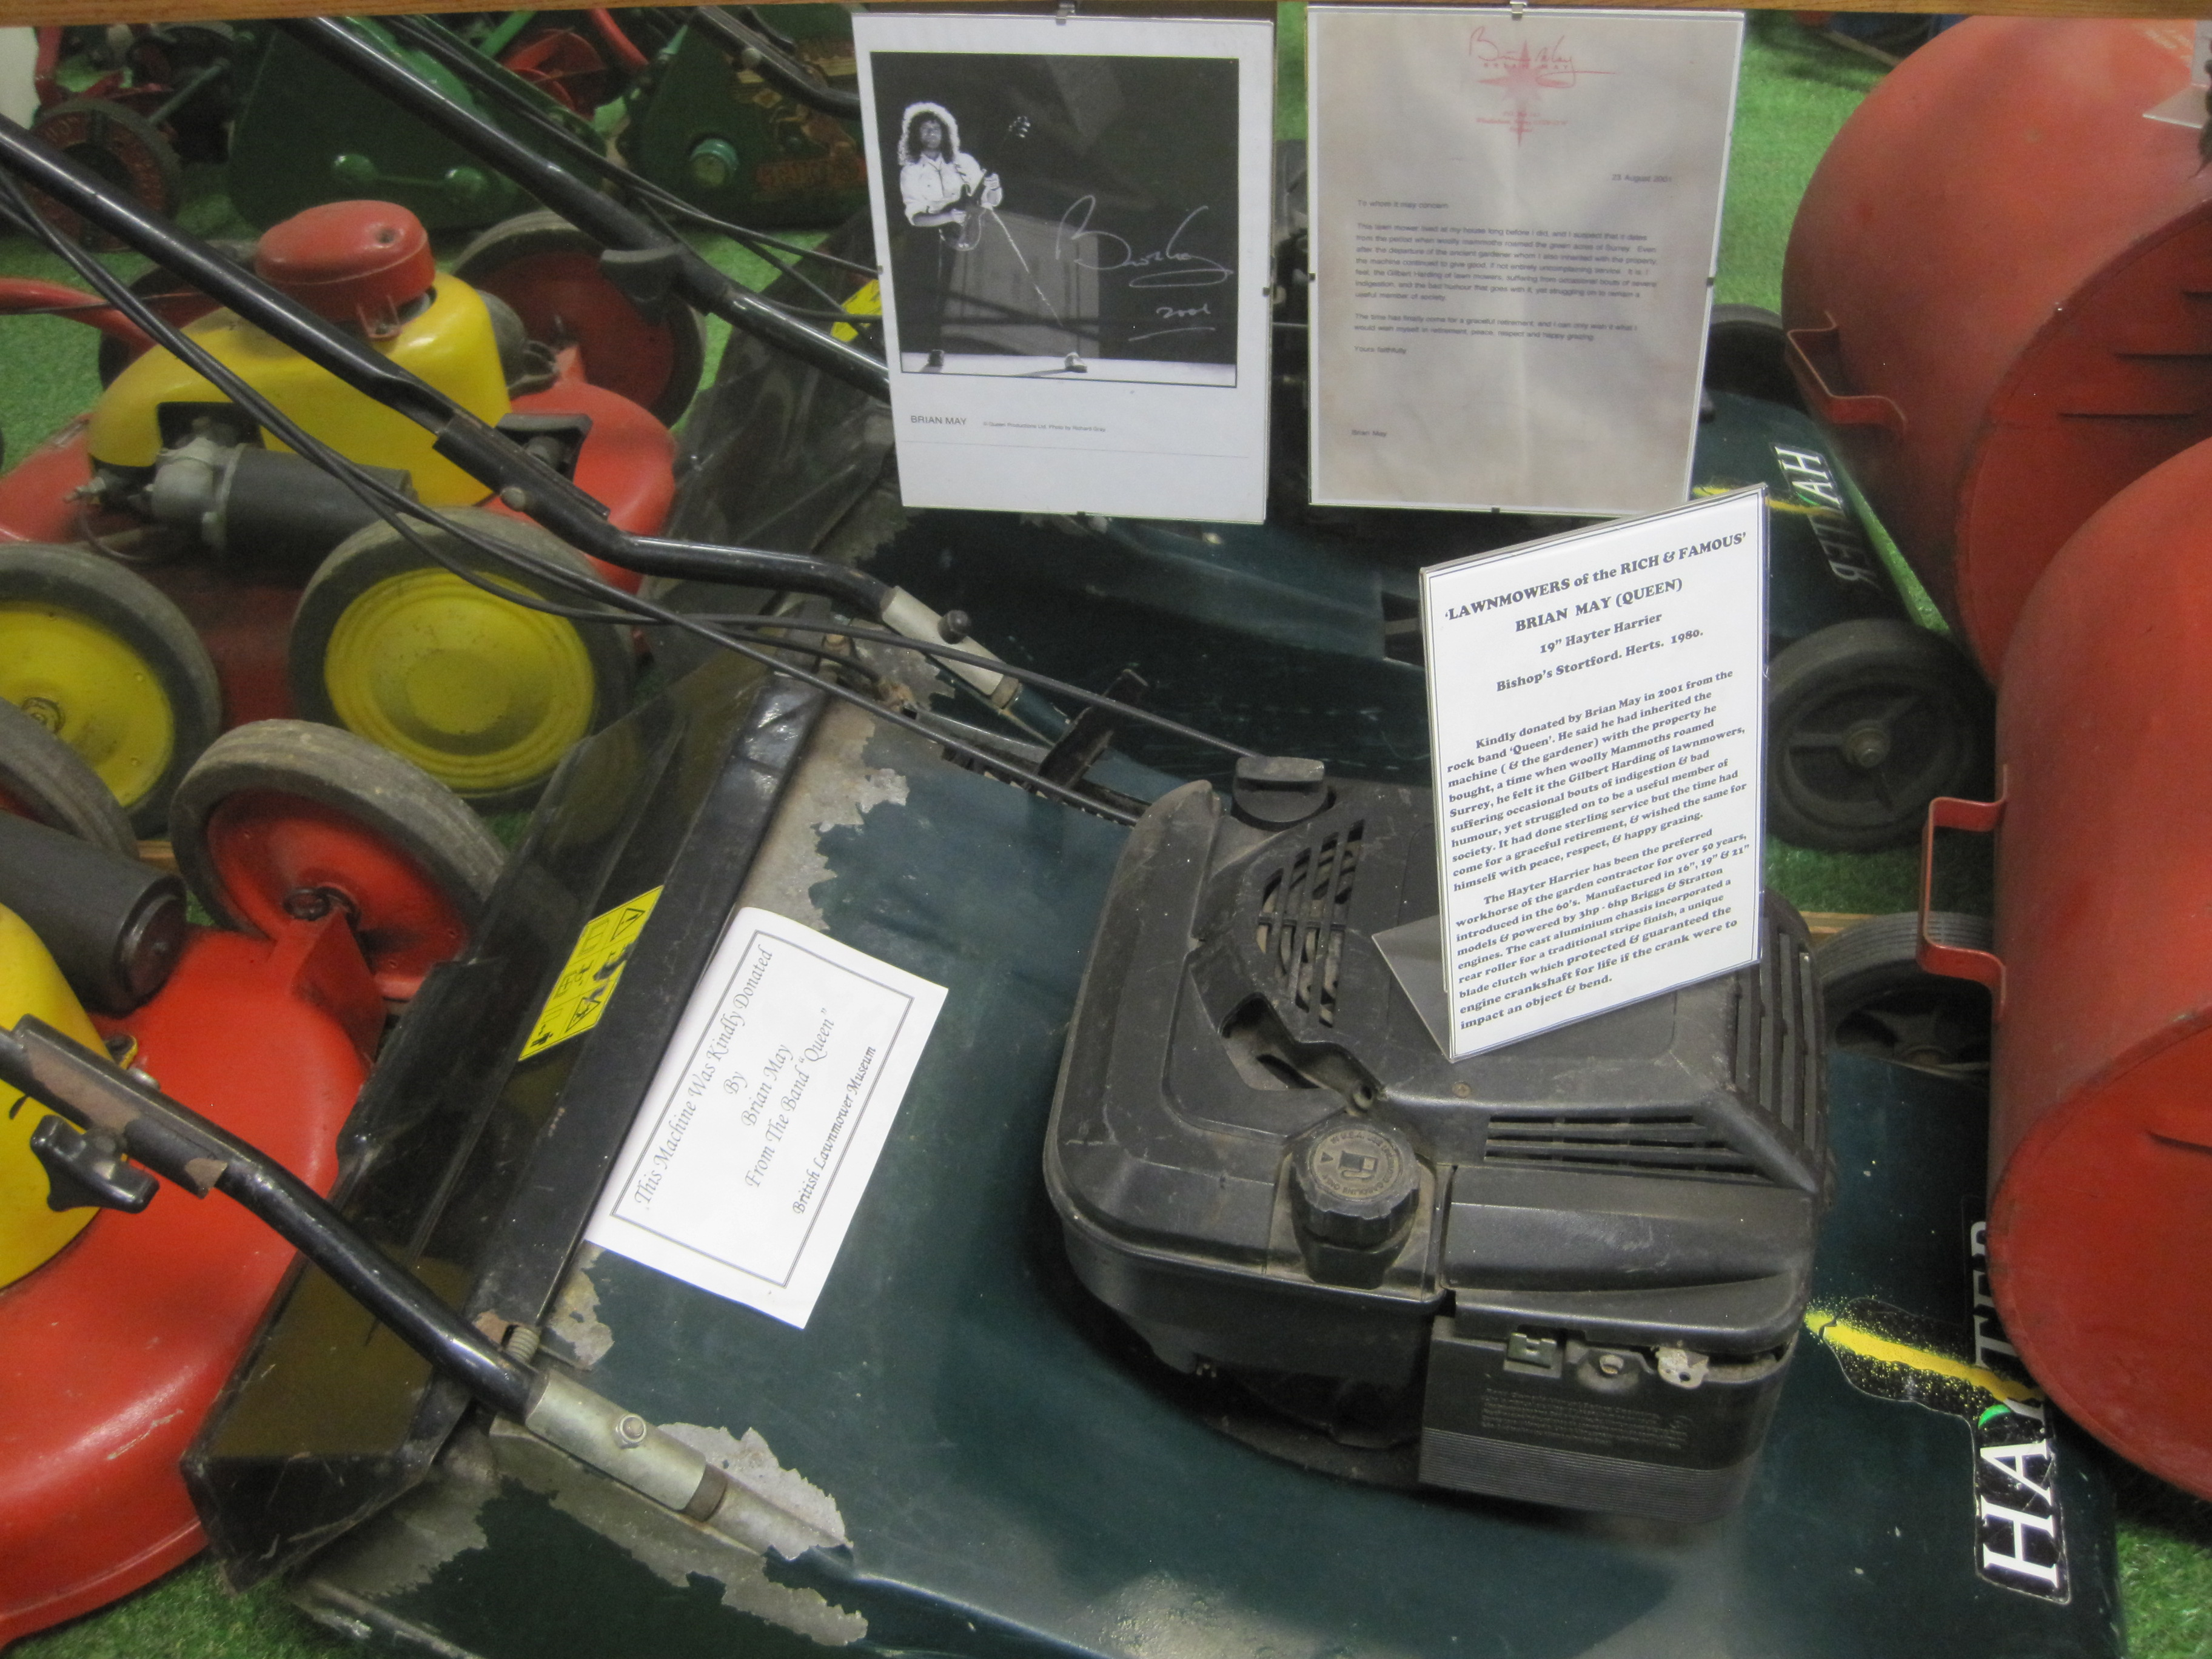 Brian May's mower - photo by Juliamaud